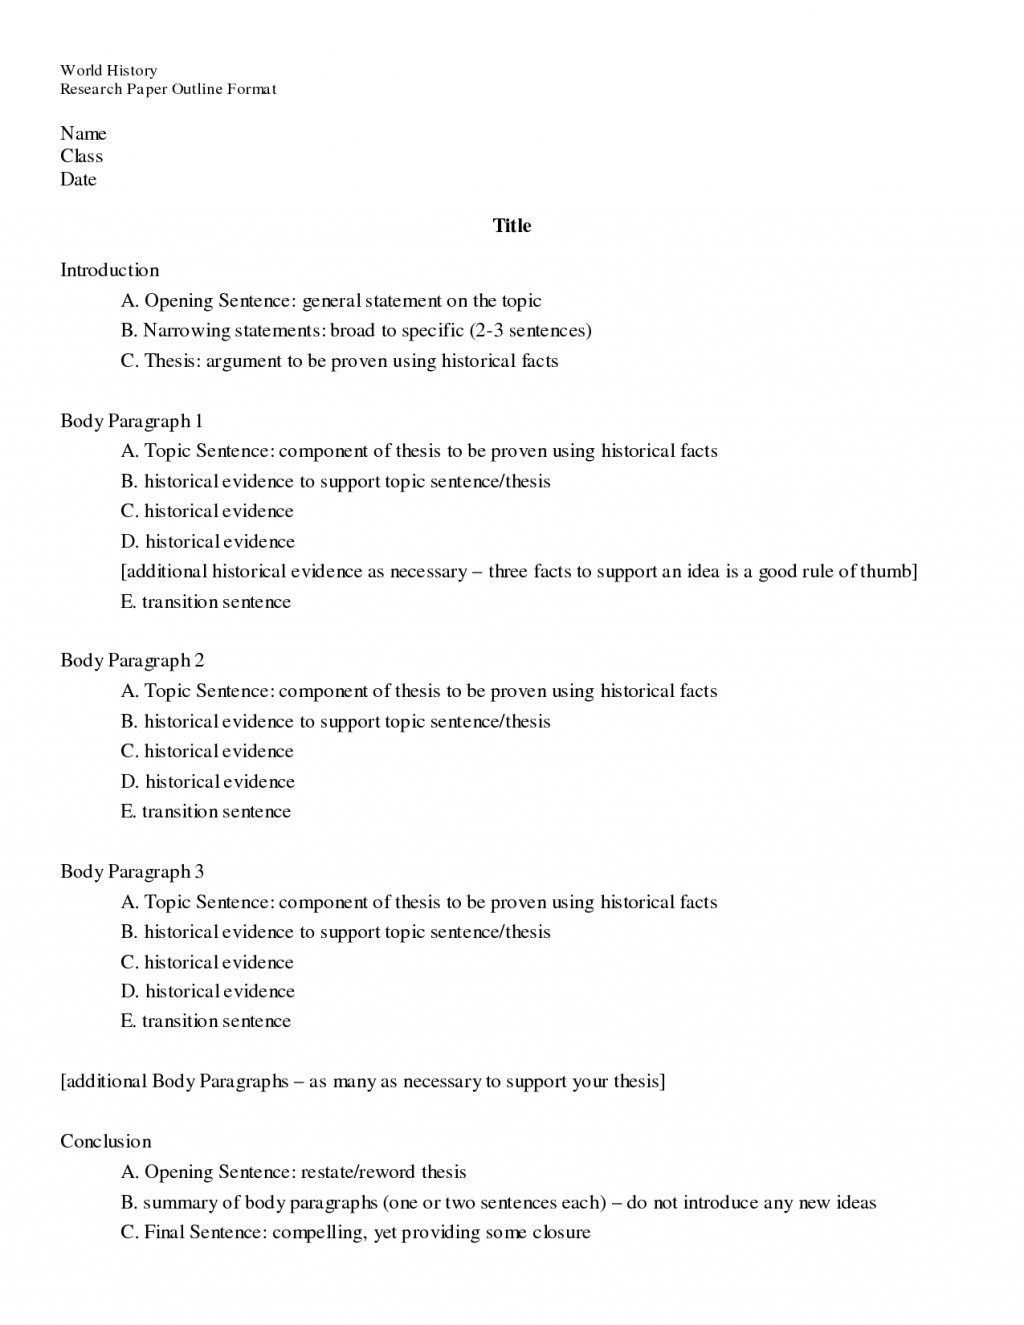 008 Research Paper Outline Impressive Template Word Sample Apa Google Docs Large